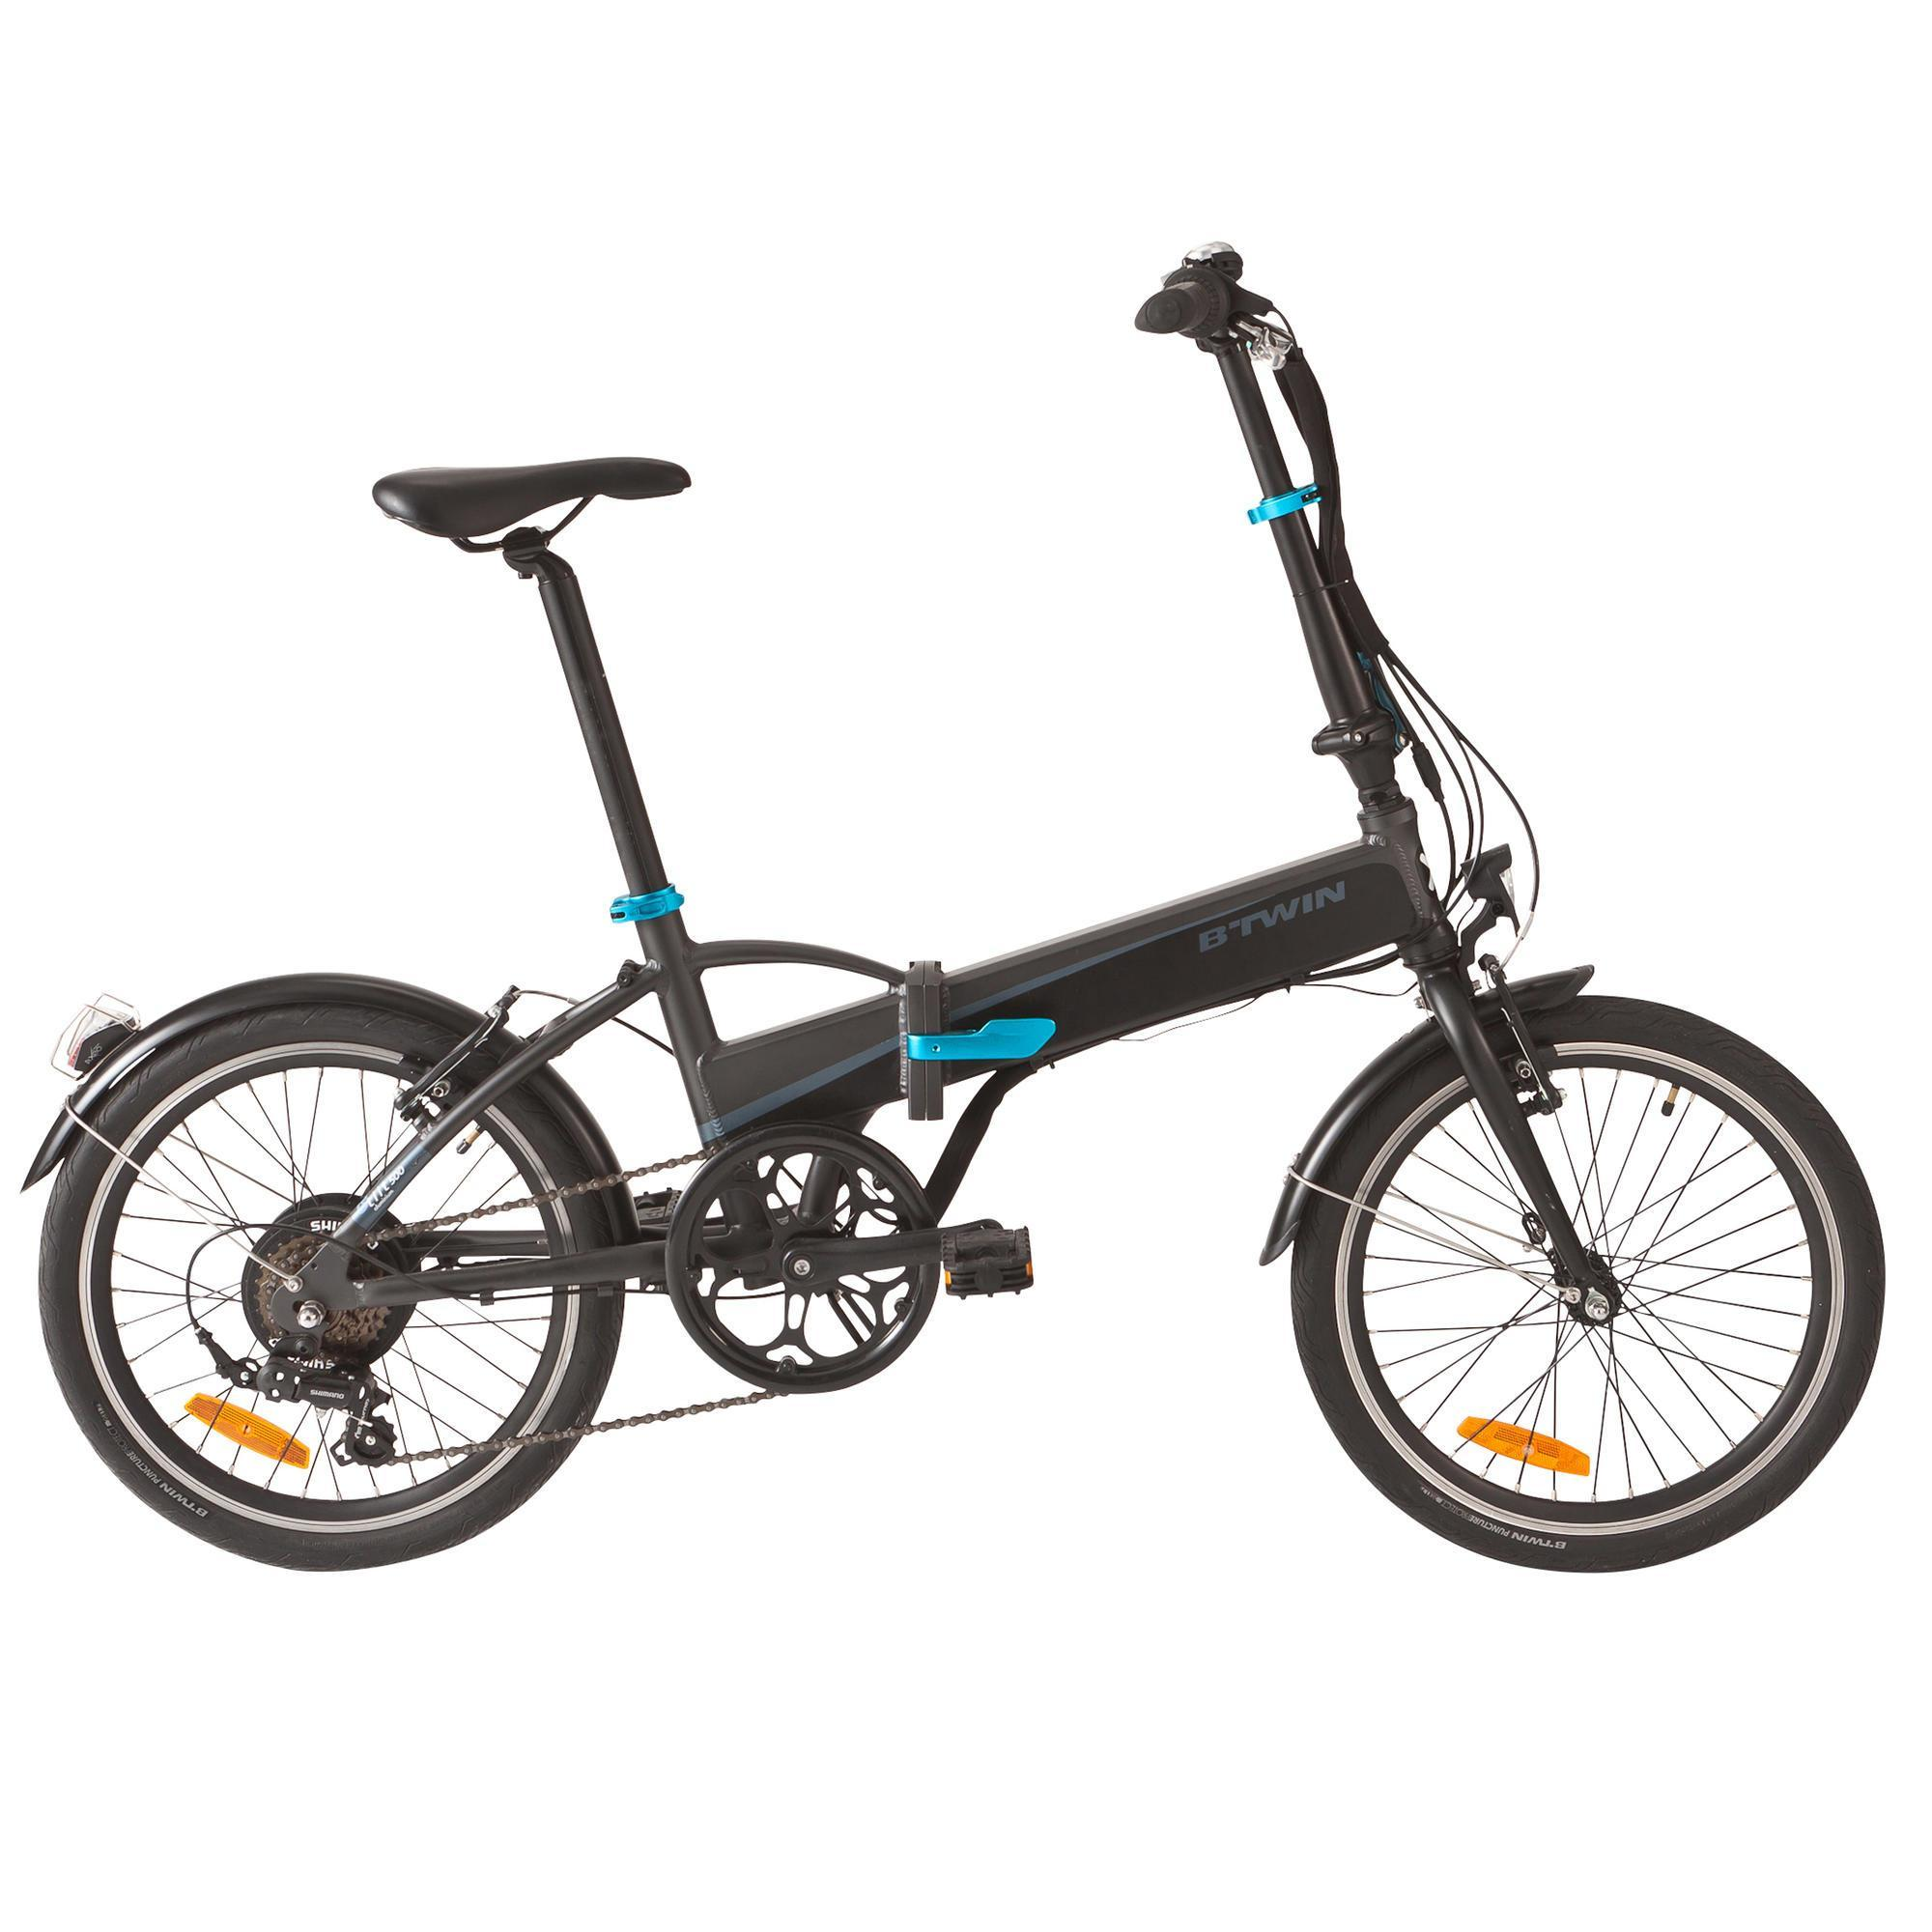 e bike 20 faltrad tilt 500 e b 39 twin decathlon. Black Bedroom Furniture Sets. Home Design Ideas